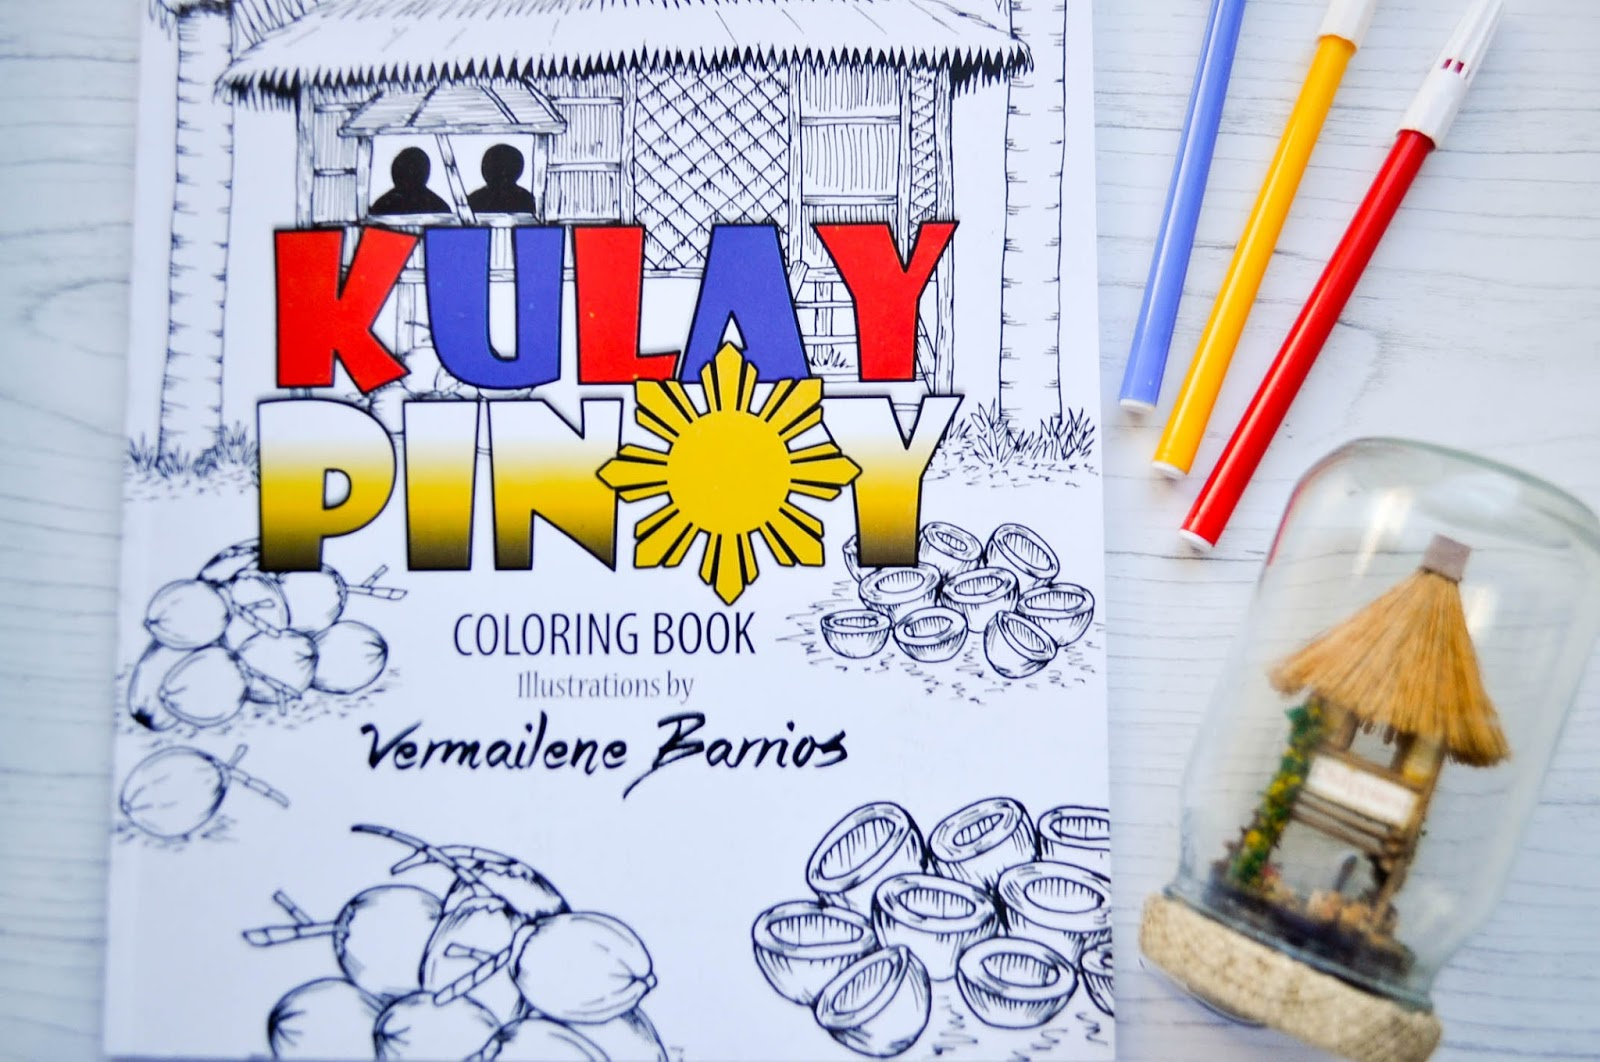 Top Coloring Books For Adults Philippines Robsparticipatecf